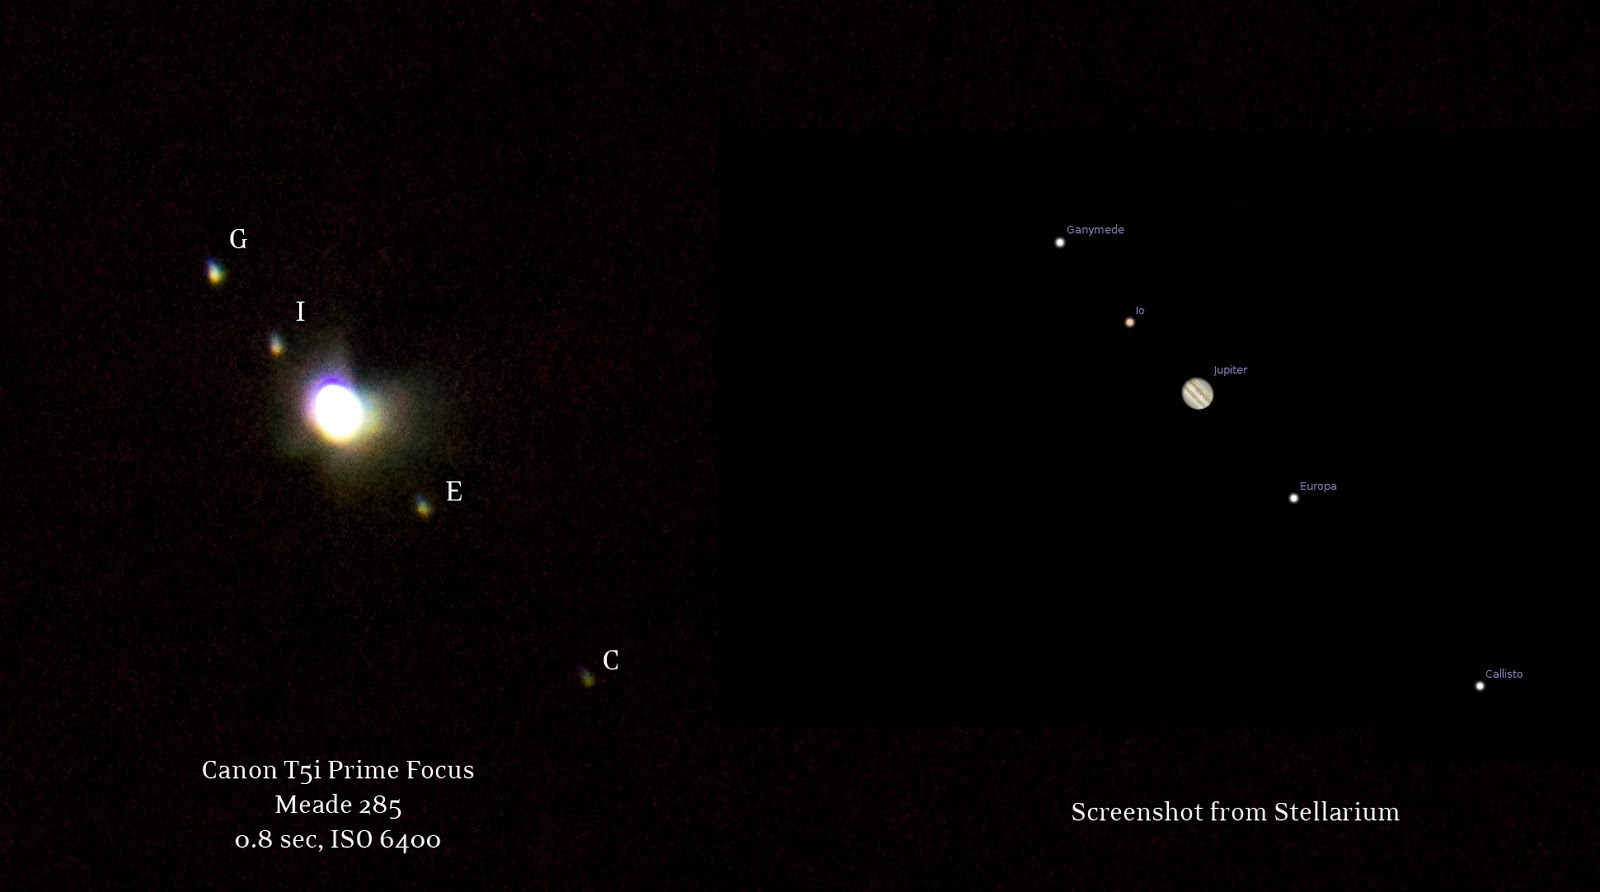 Jupiter and moons from DSLR